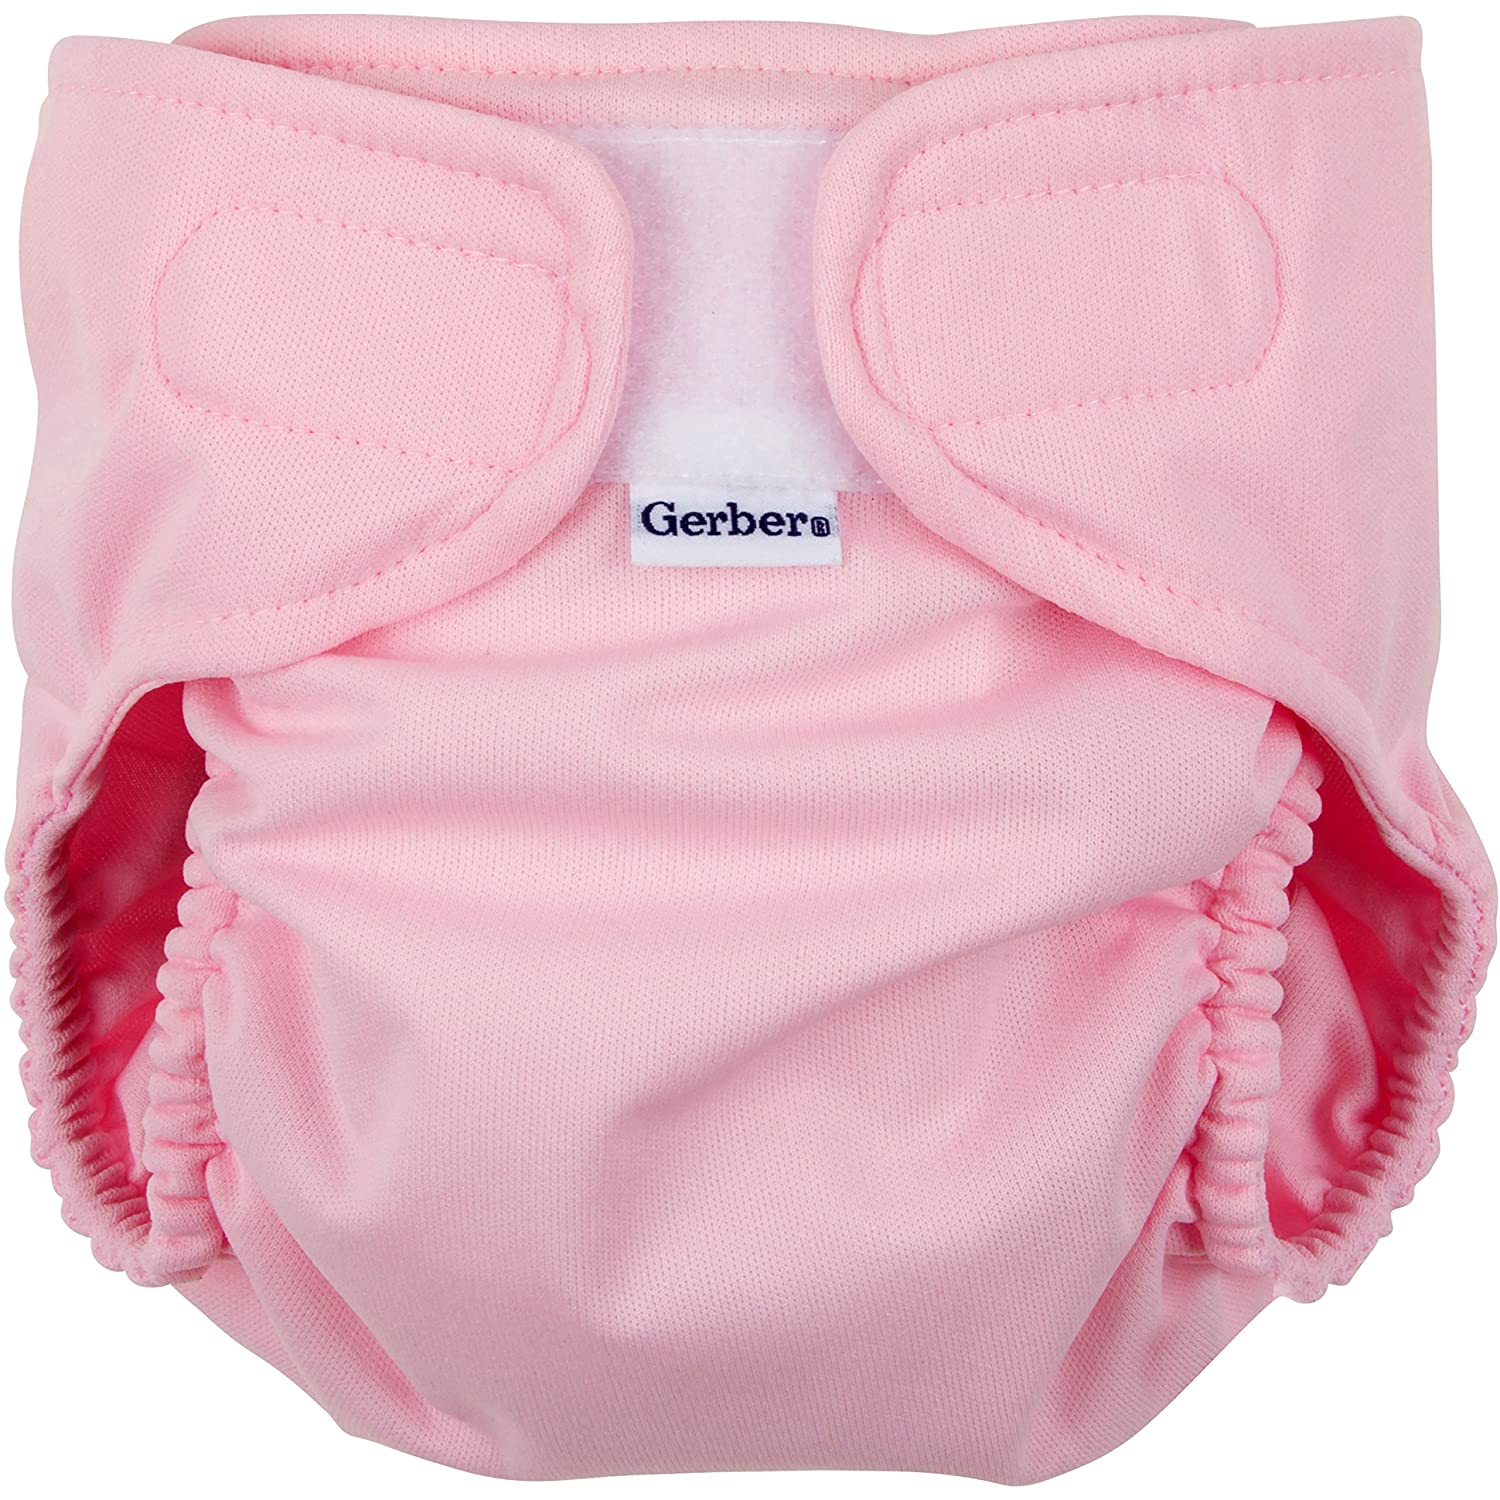 Gerber All-in-one Reusable Cloth Diaper